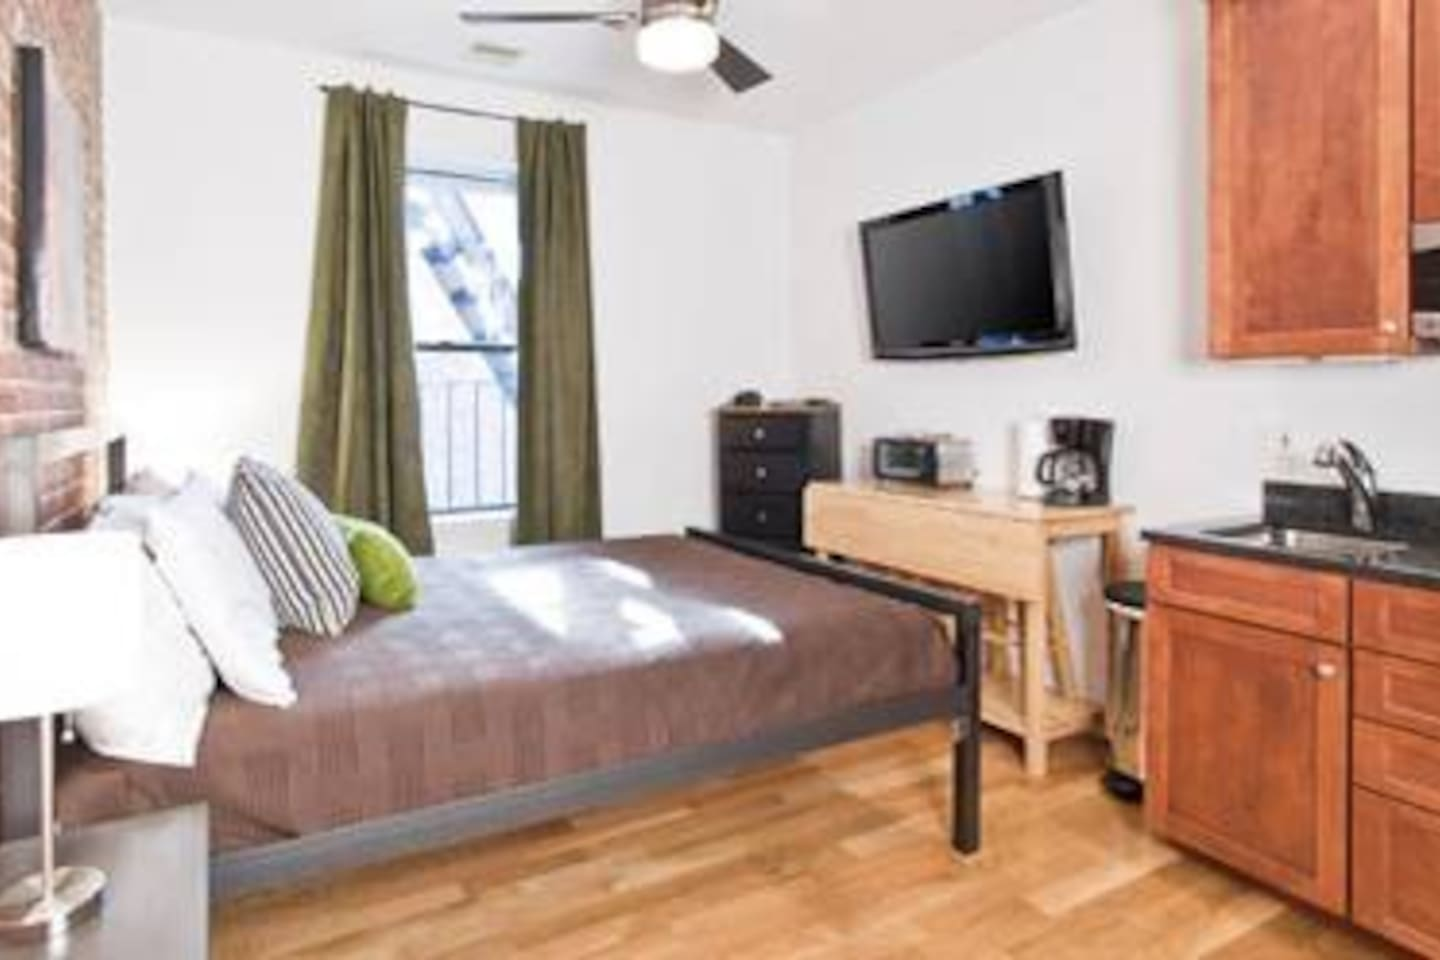 [1358] Small Studio in South End